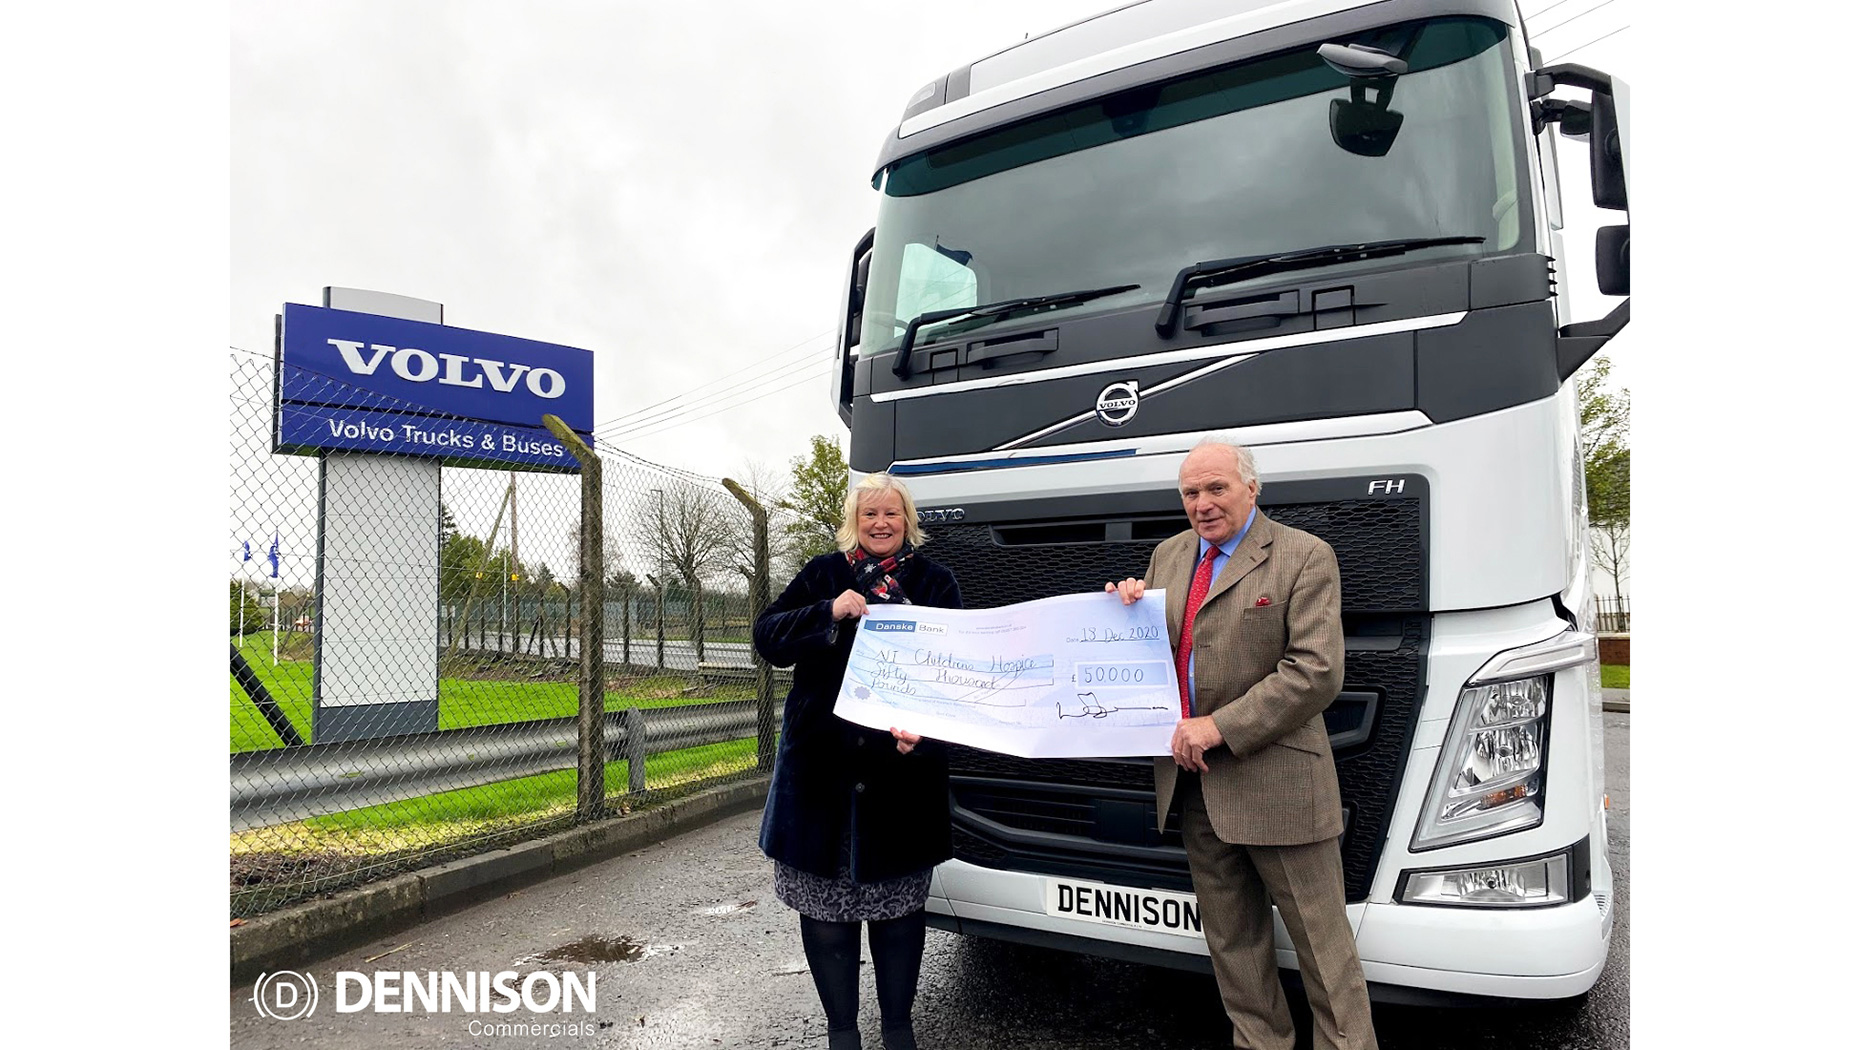 Dennison Commercials honor 50th Anniversary pledge of £50,000 to NI Children's Hospice